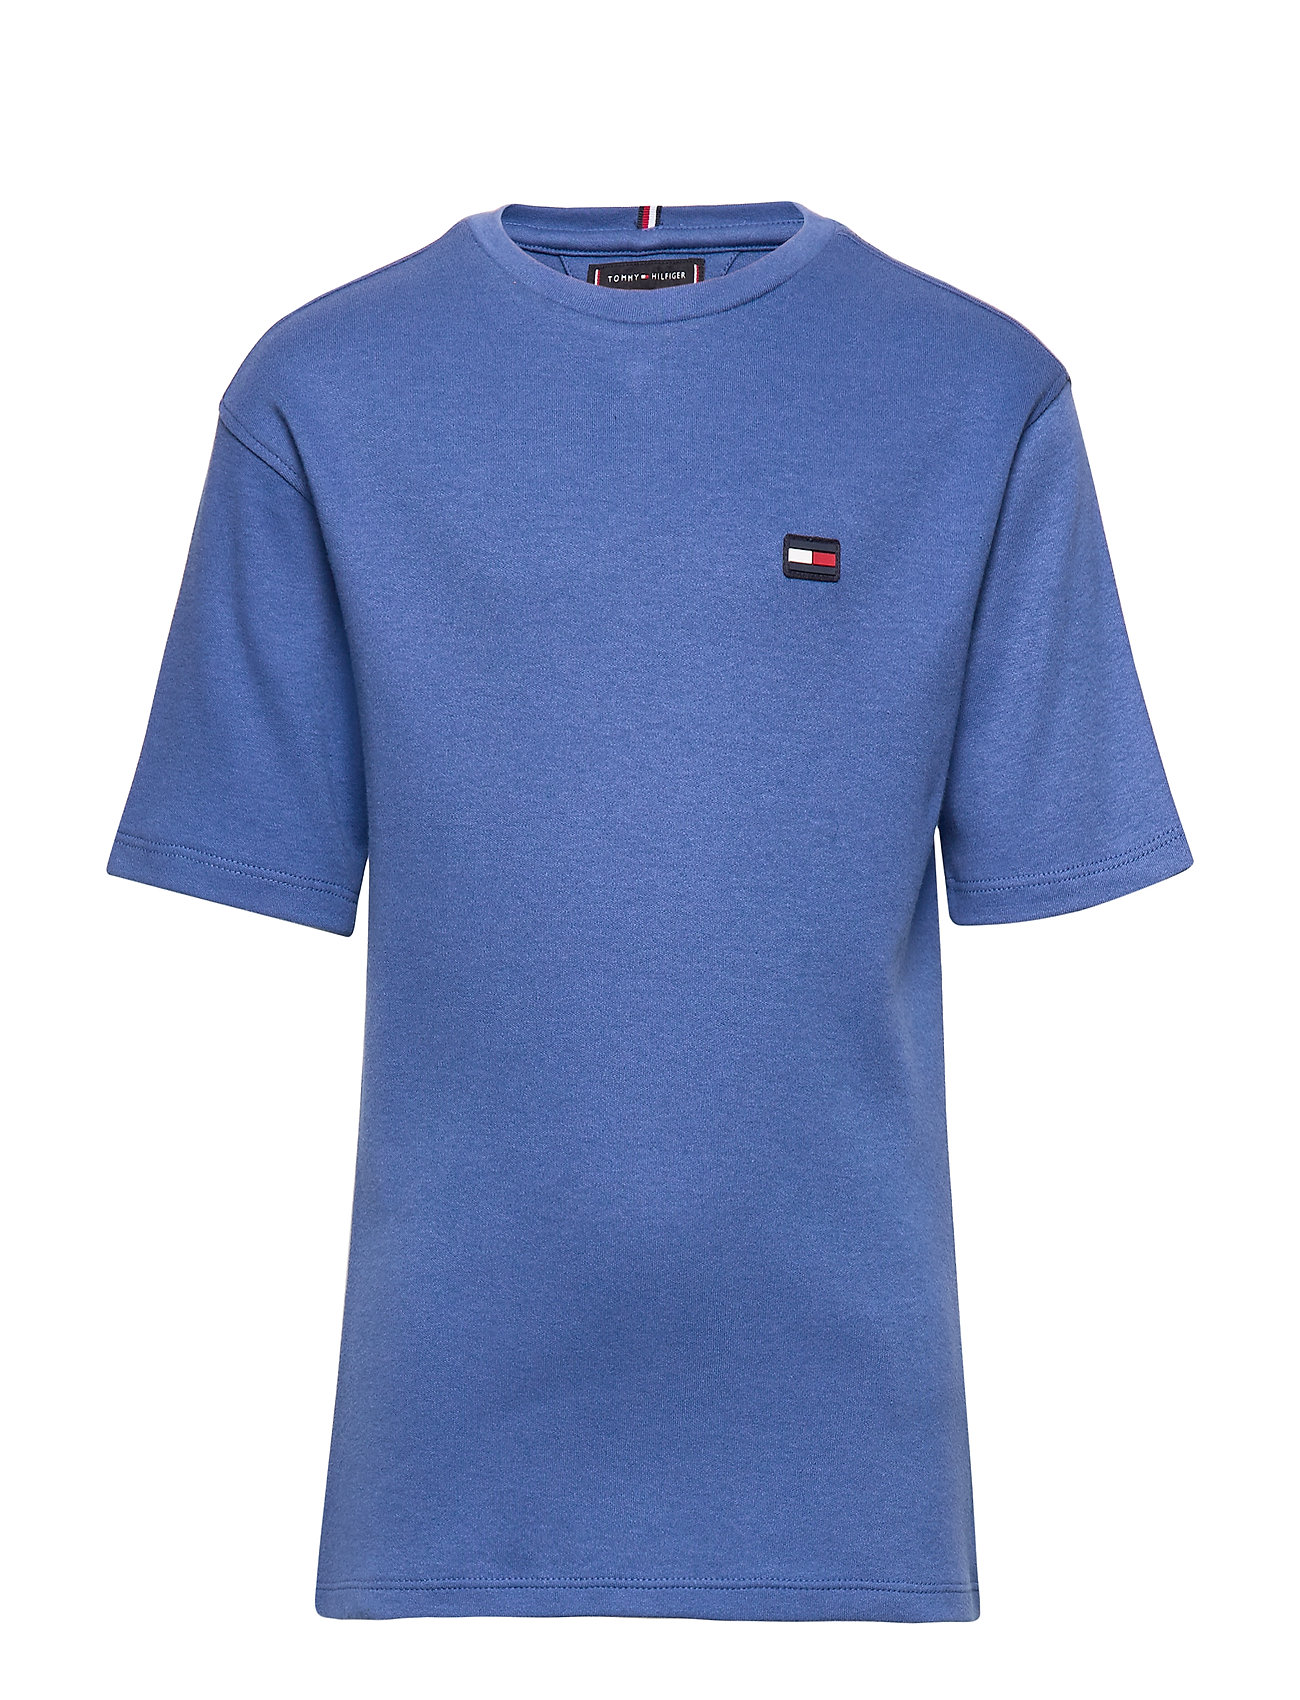 Tommy Hilfiger GAME ON PRINT TEE S/ - DUTCH BLUE